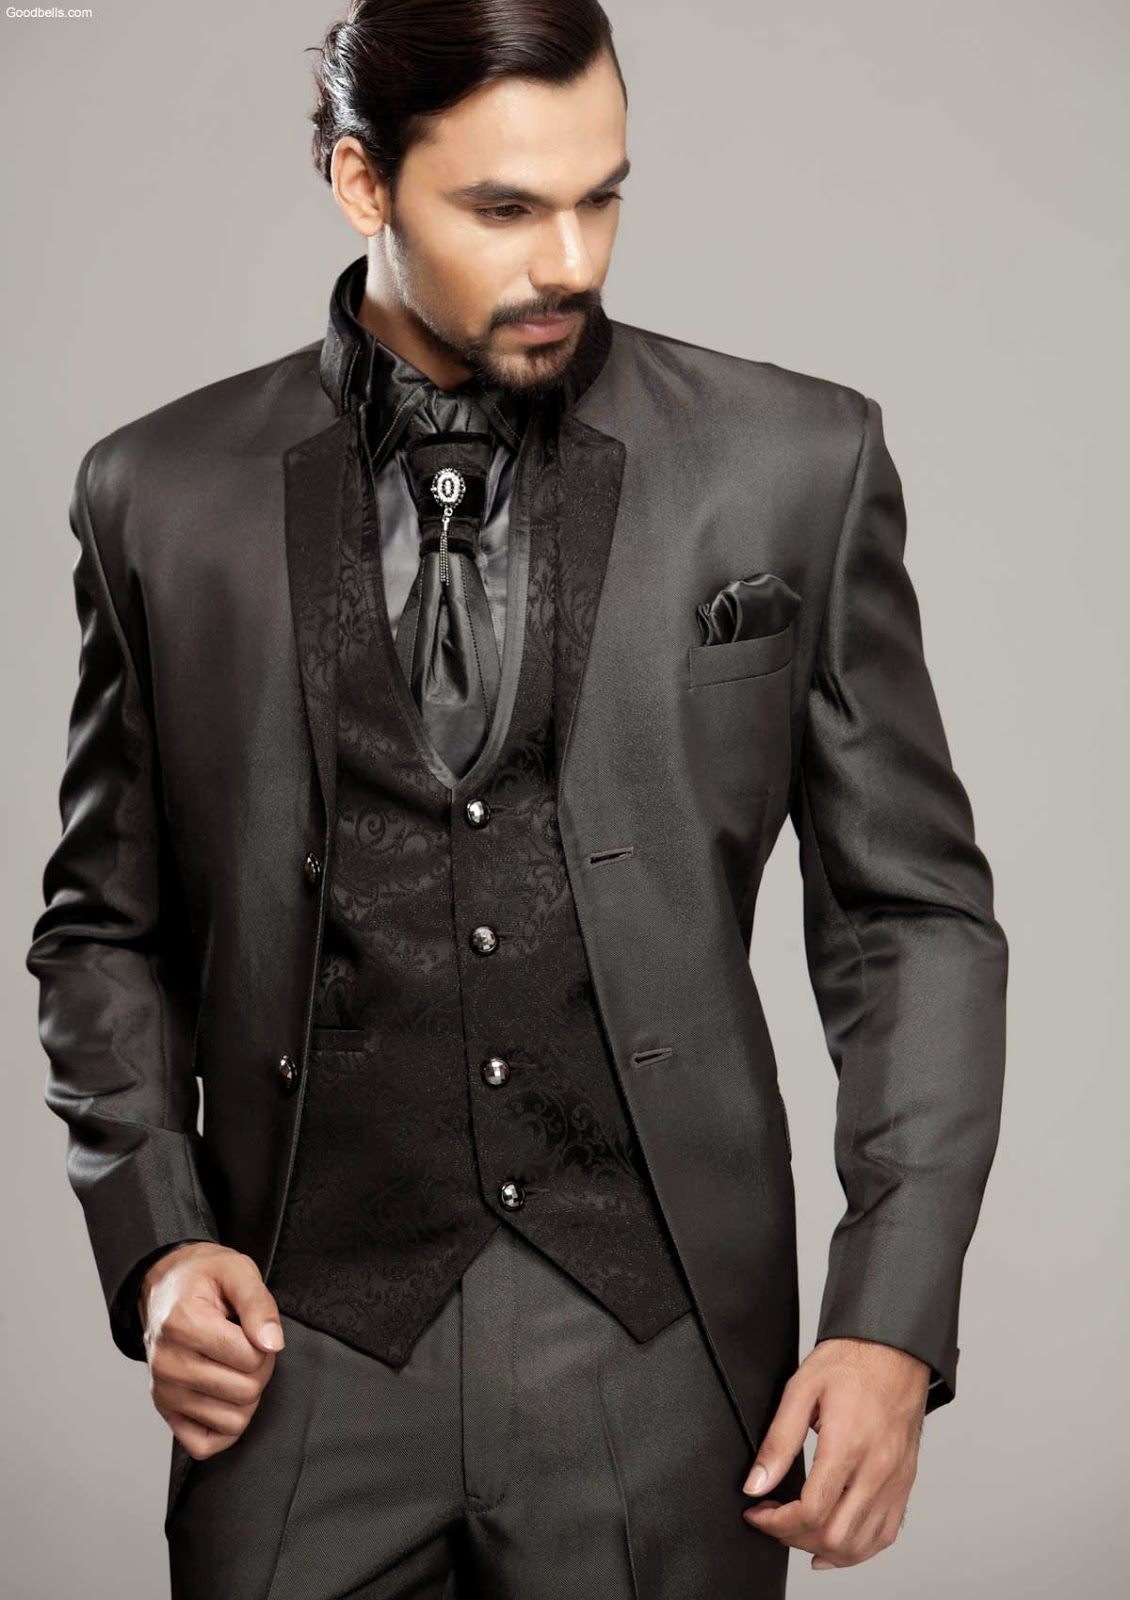 Wedding Suit For Indian Men Indian Wedding Dresses For Men